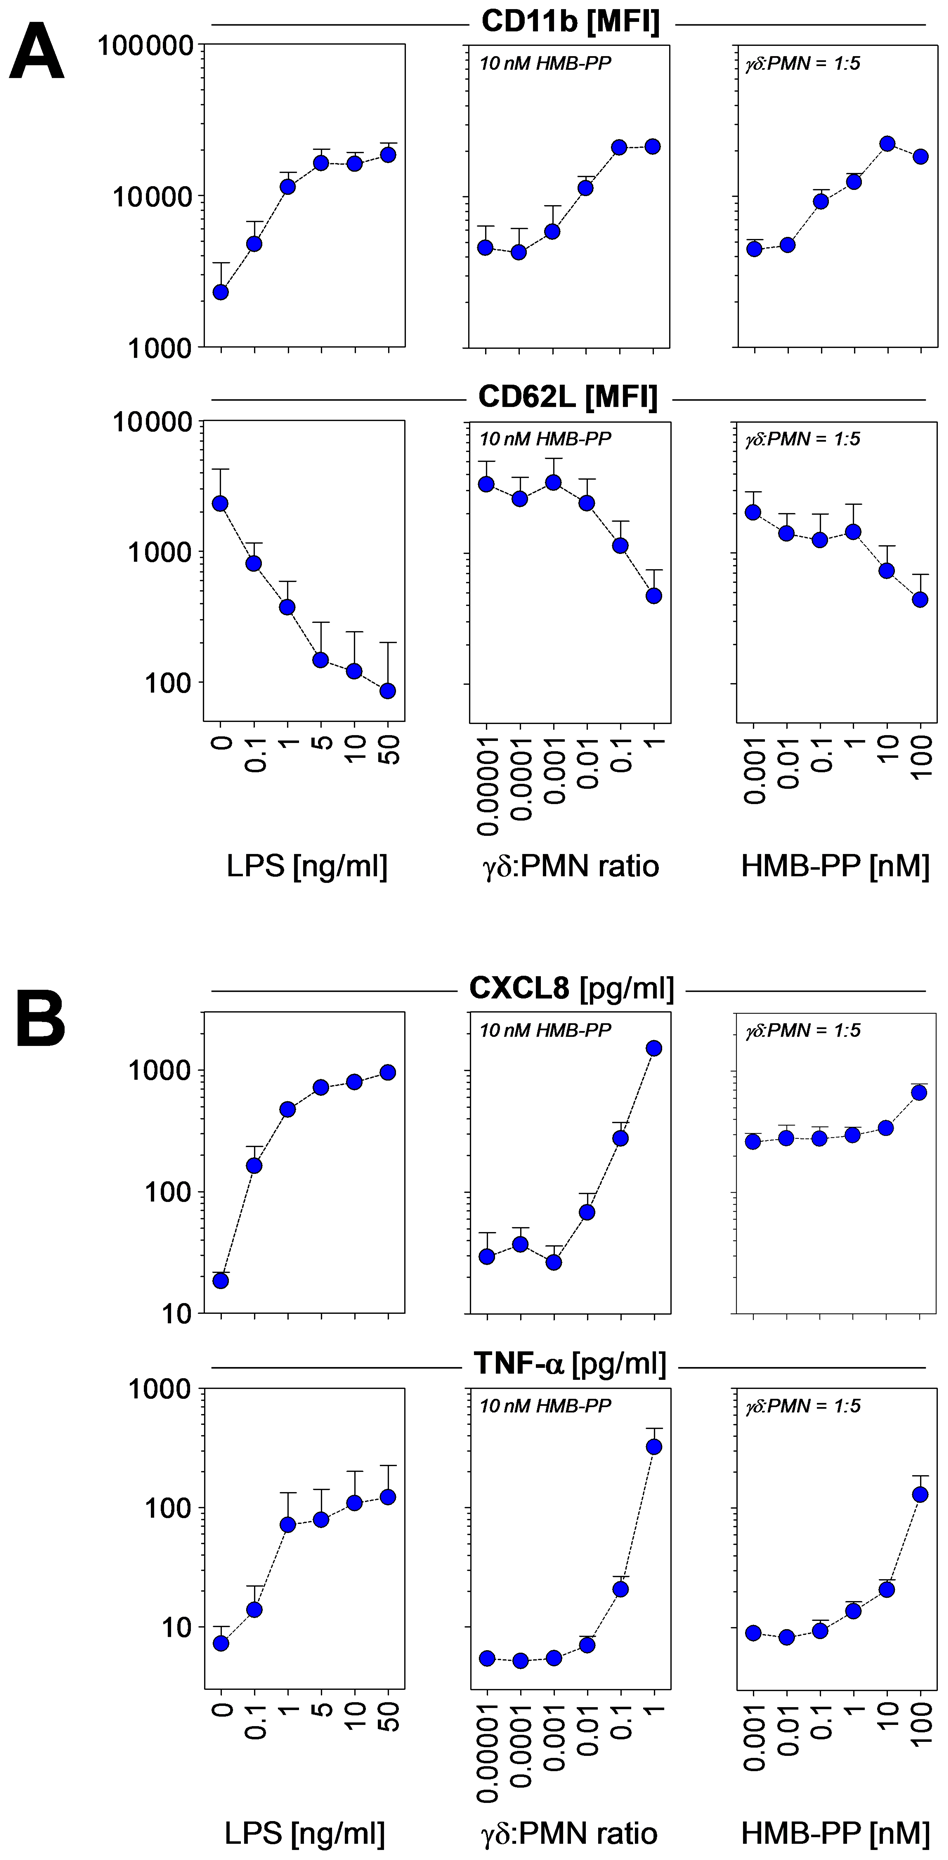 HMB-PP stimulated Vγ9/Vδ2 T cells induce neutrophil activation and production of pro-inflammatory mediators.